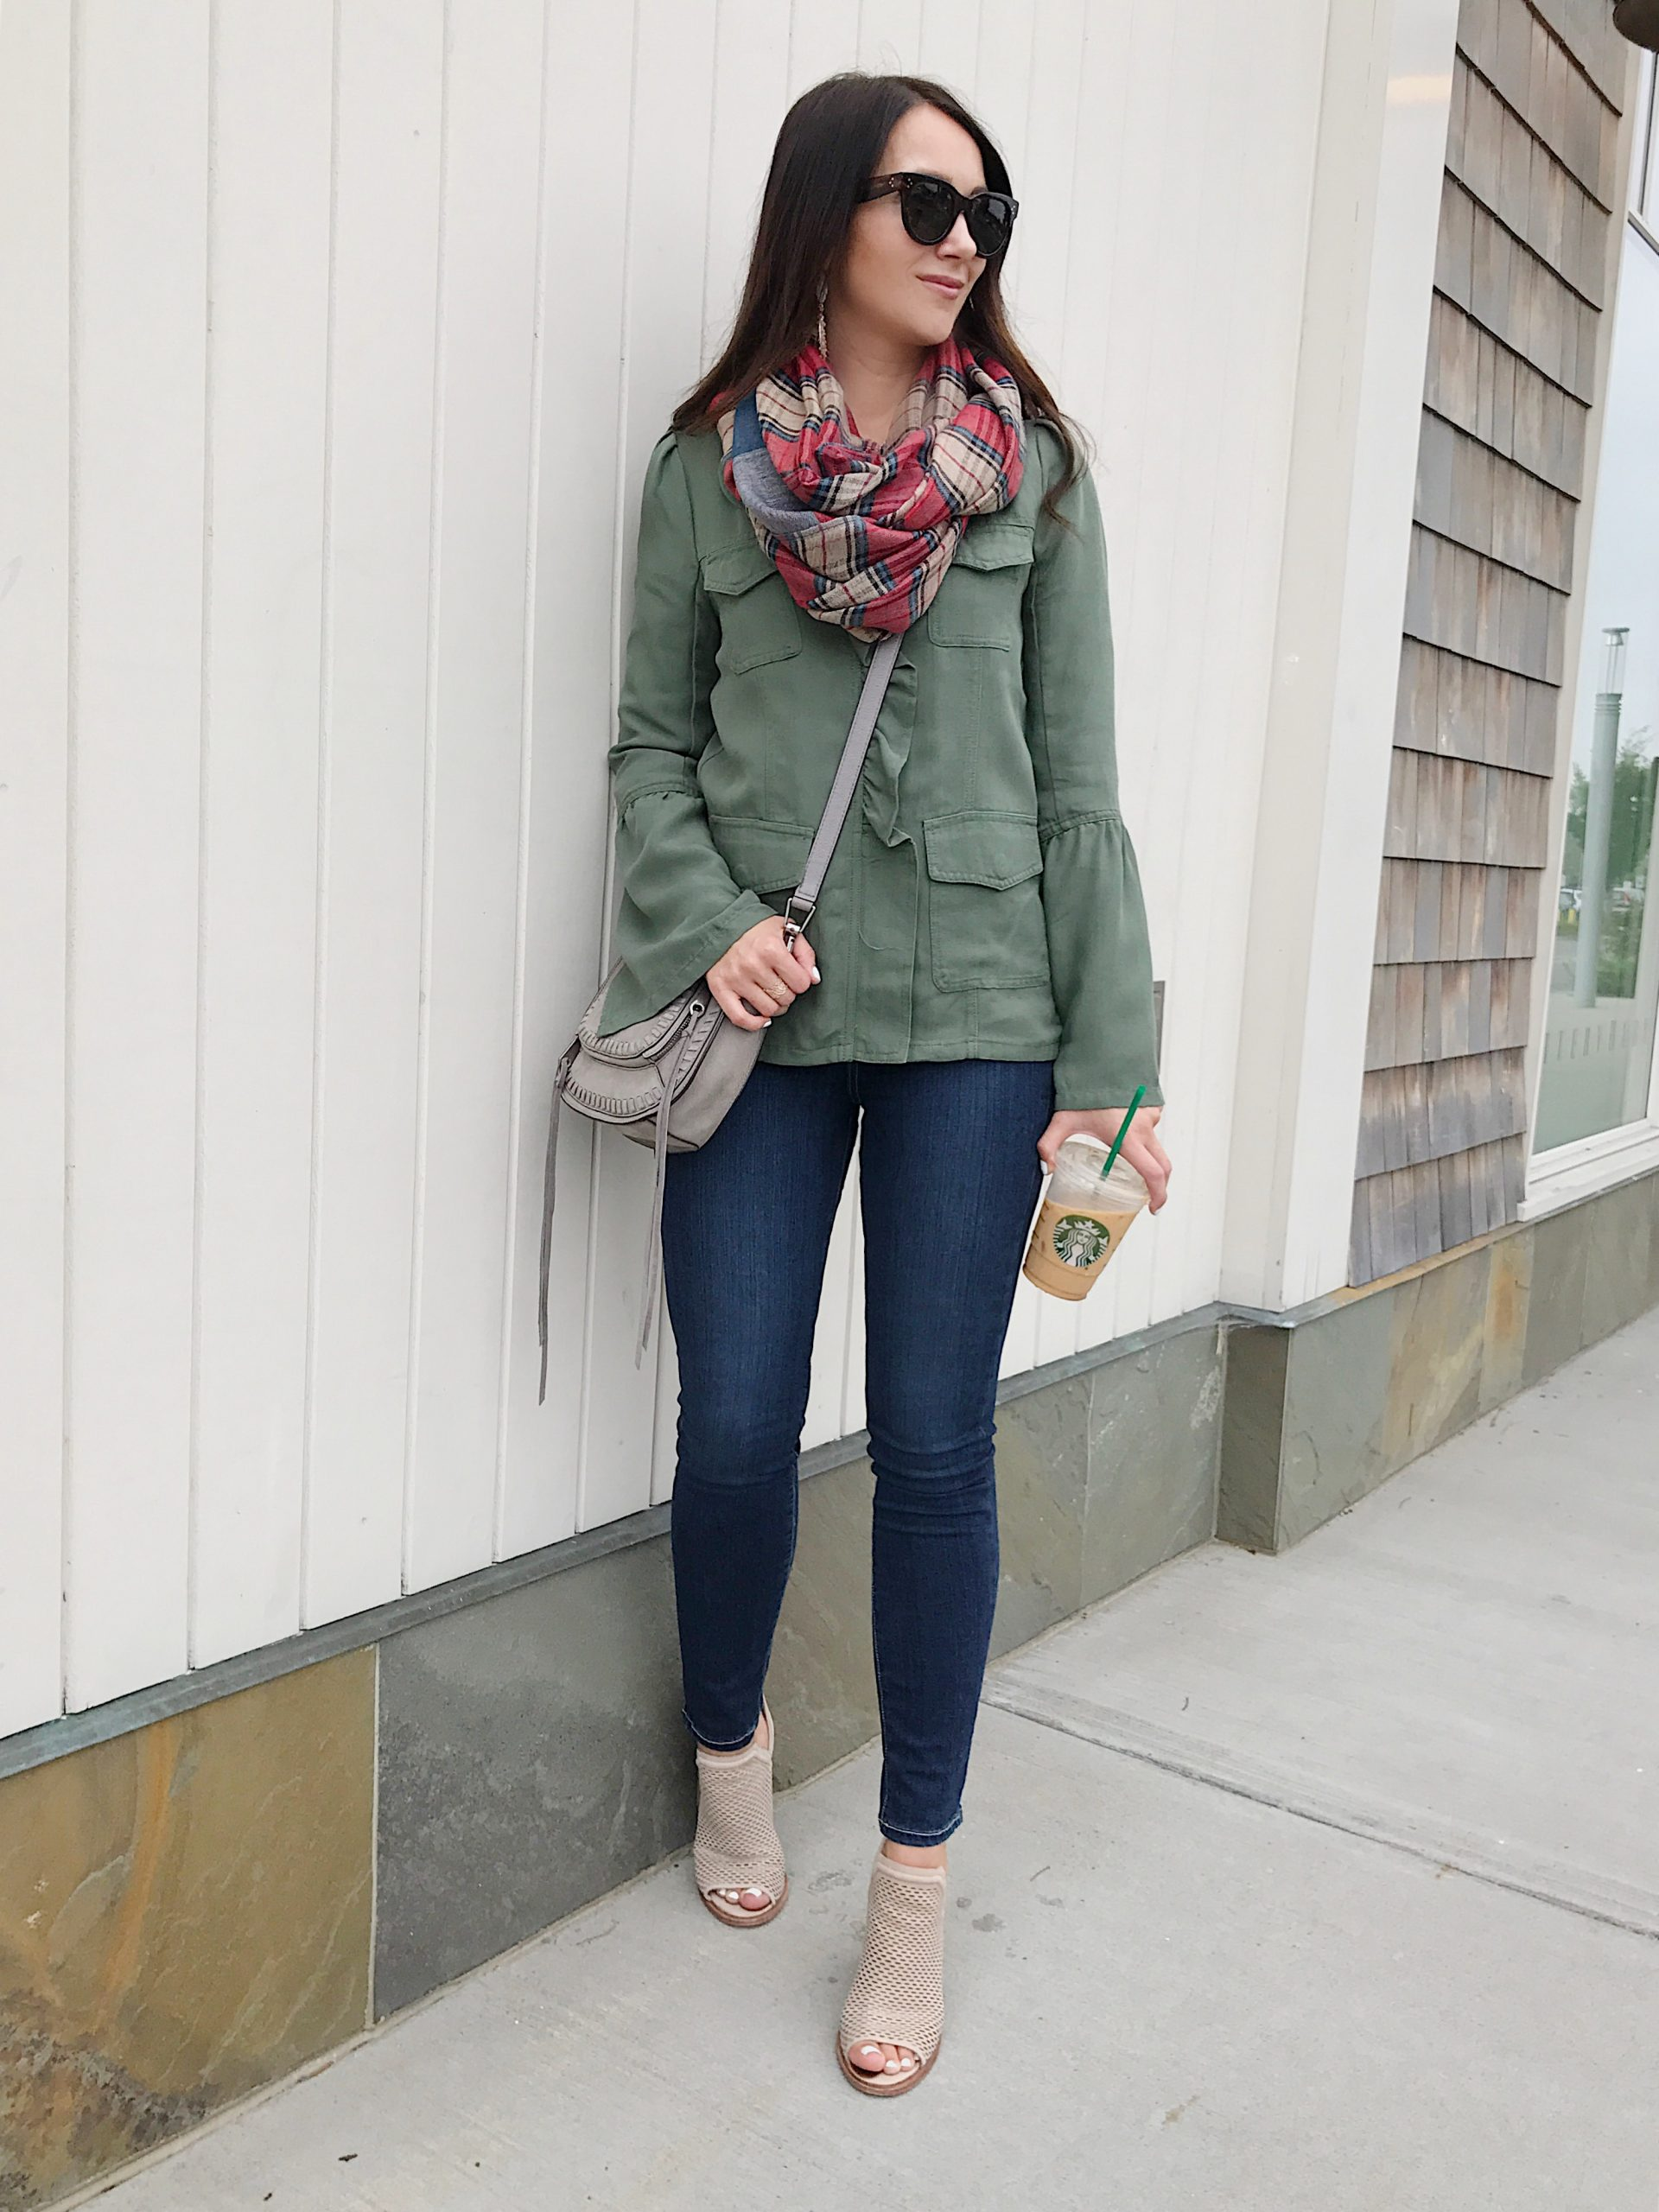 blogger Anna Monteiro of Blushing Rose Style wearing rebecca minkoff bag from nordstrom